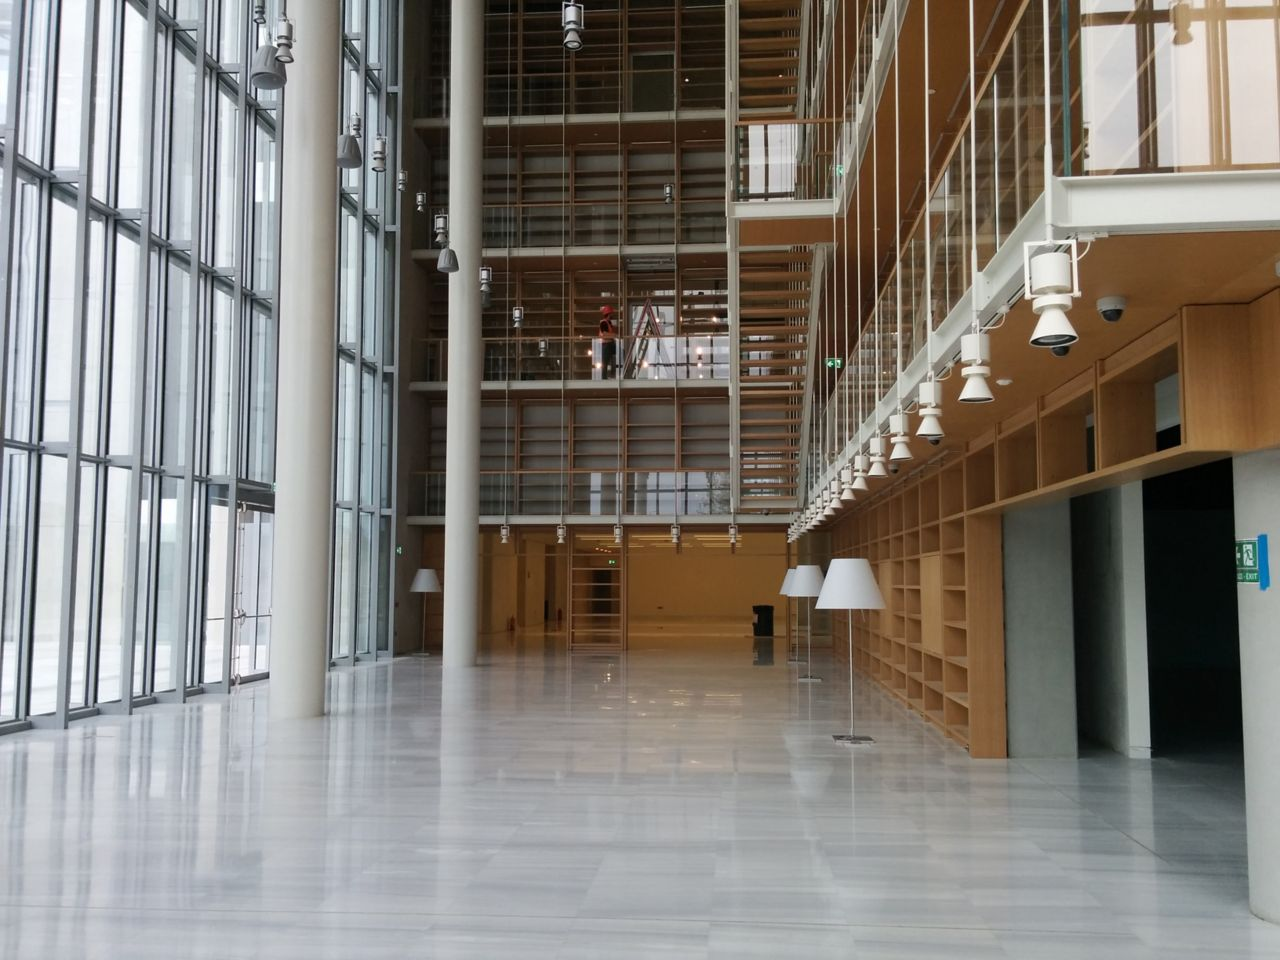 National Library of Greece lobby at the Stavros Niarchos Foundation Cultural Center